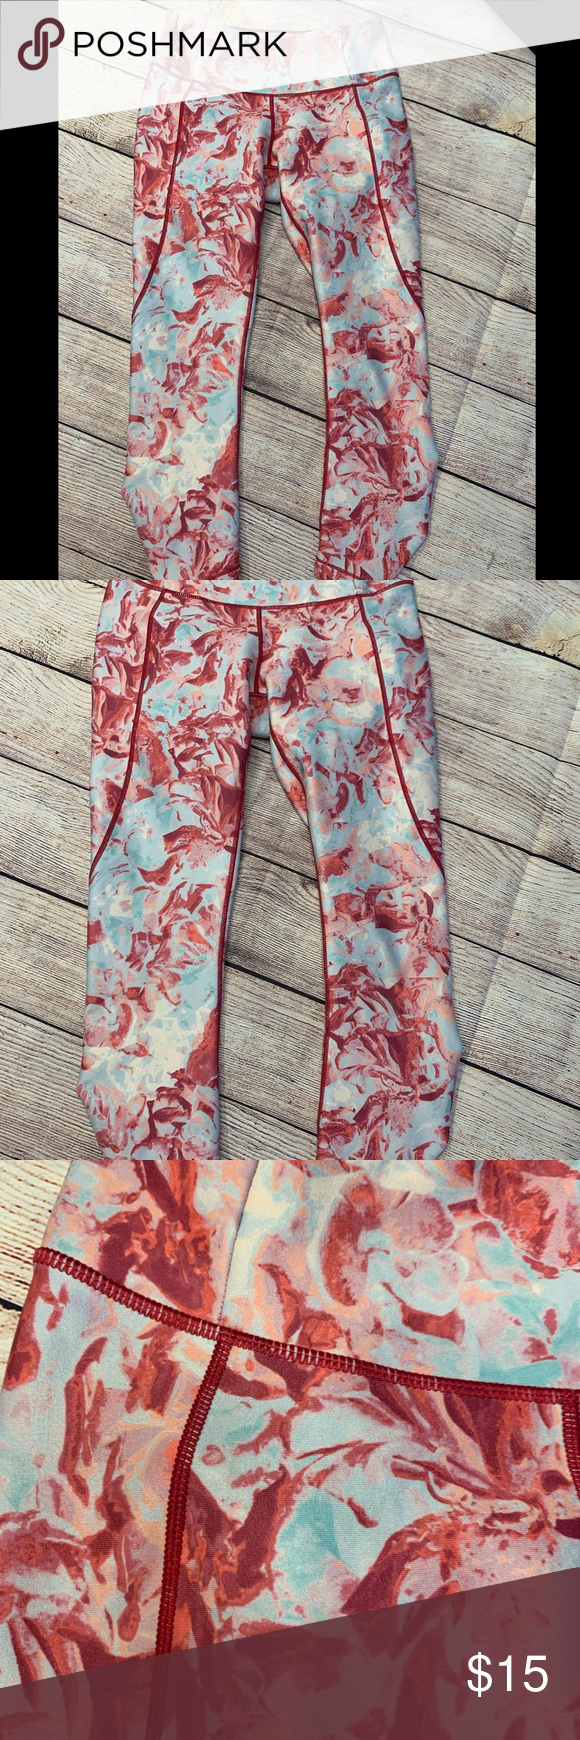 Calio by Carrie Underwood Workout Pants Size XSmall Three-quarter length workout pants with ruched legs Beautiful light blue and red floral pattern Tag no longer shows size but they are XS CALIA by Carrie Underwood Pants Leggings #carrieunderwoodlegworkout